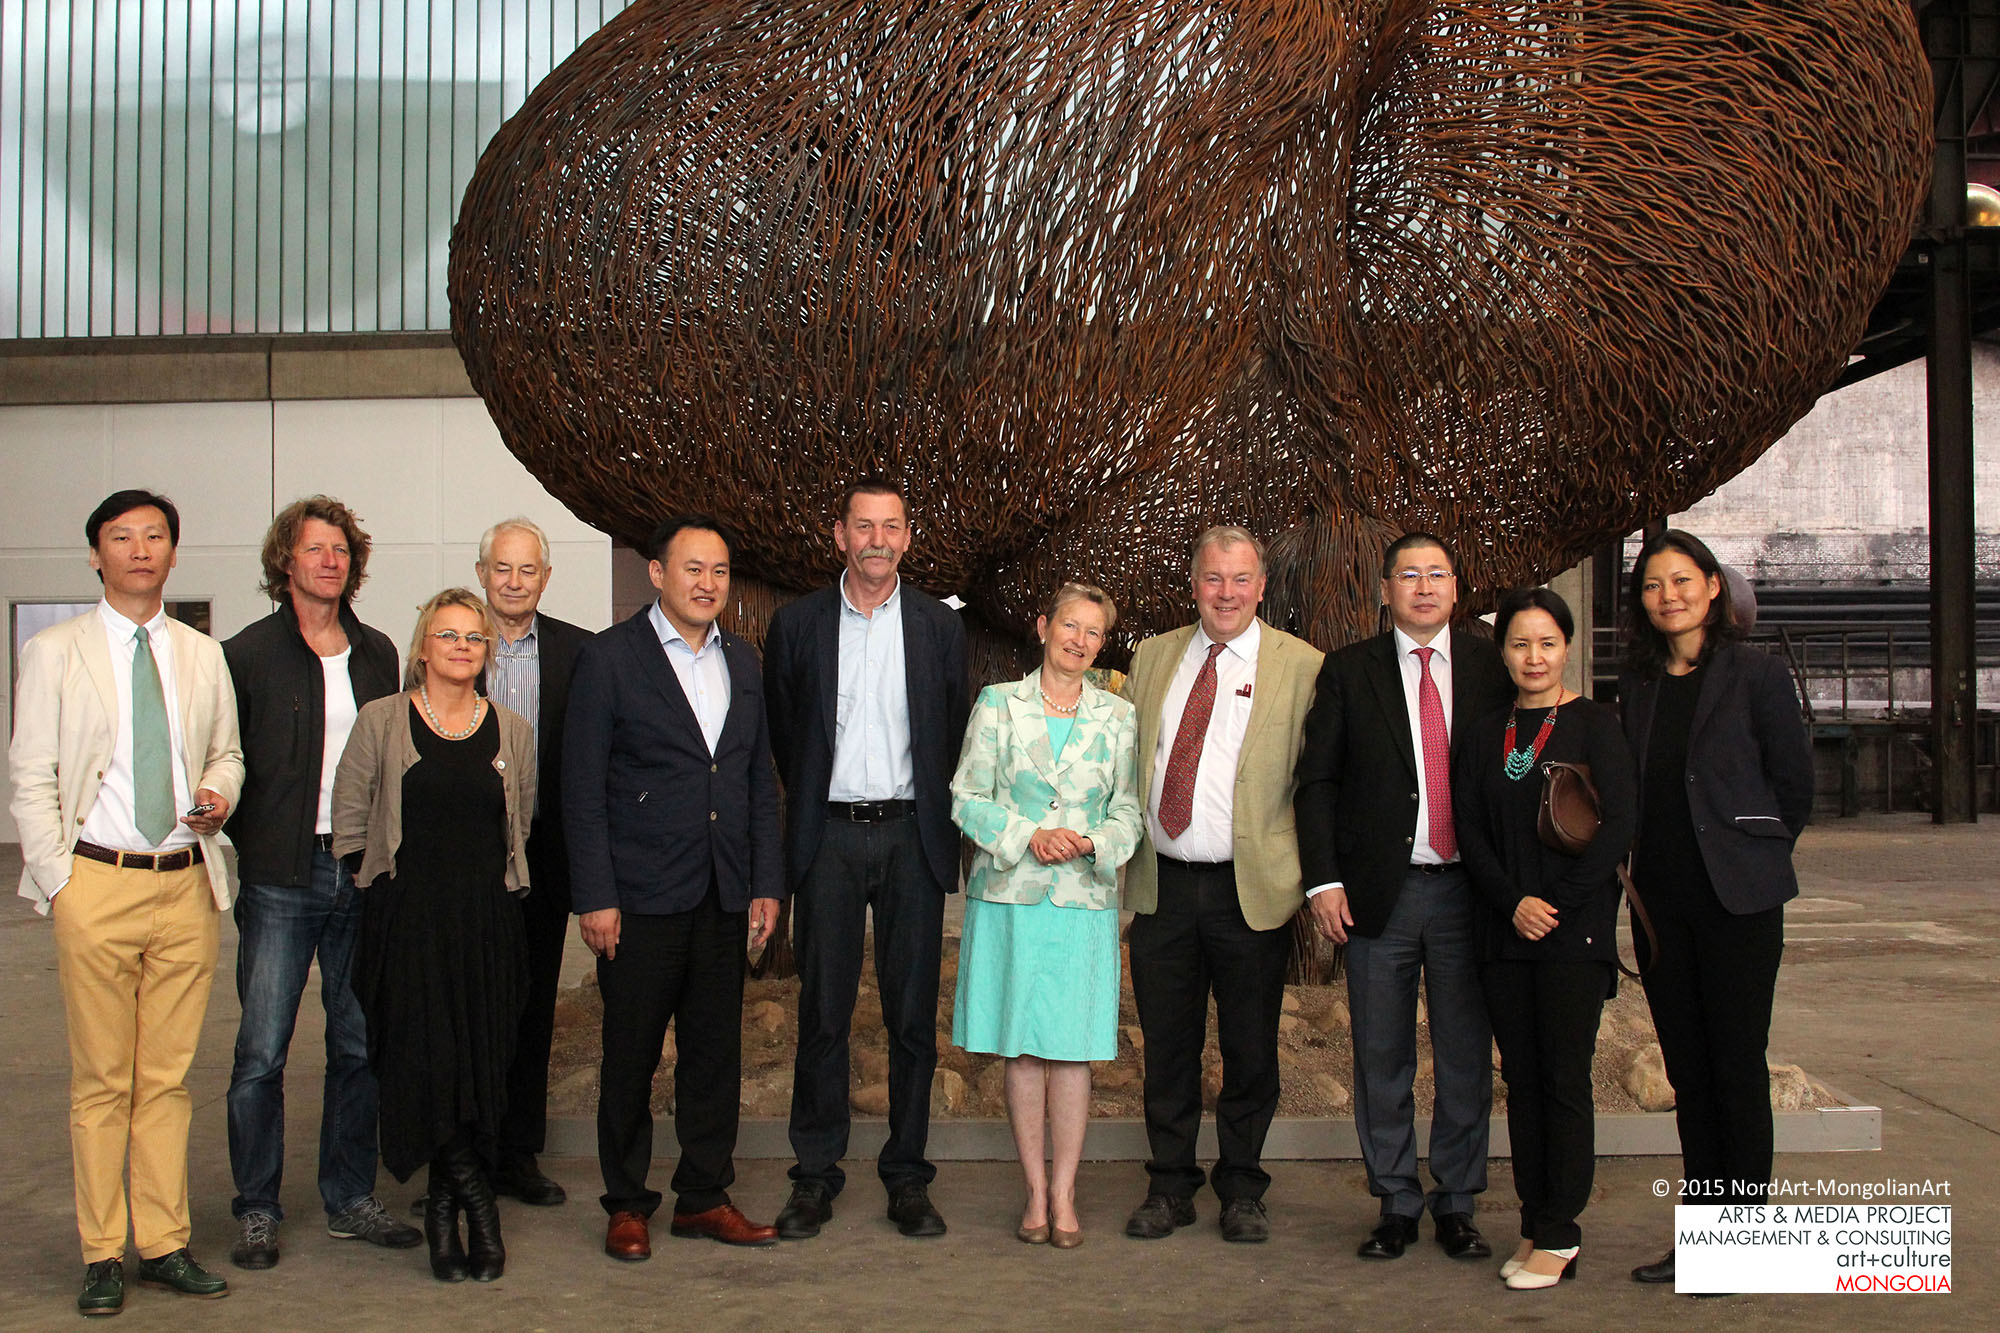 NordArt_MP Partners, Curators, Supporter_06.06.15.jpg